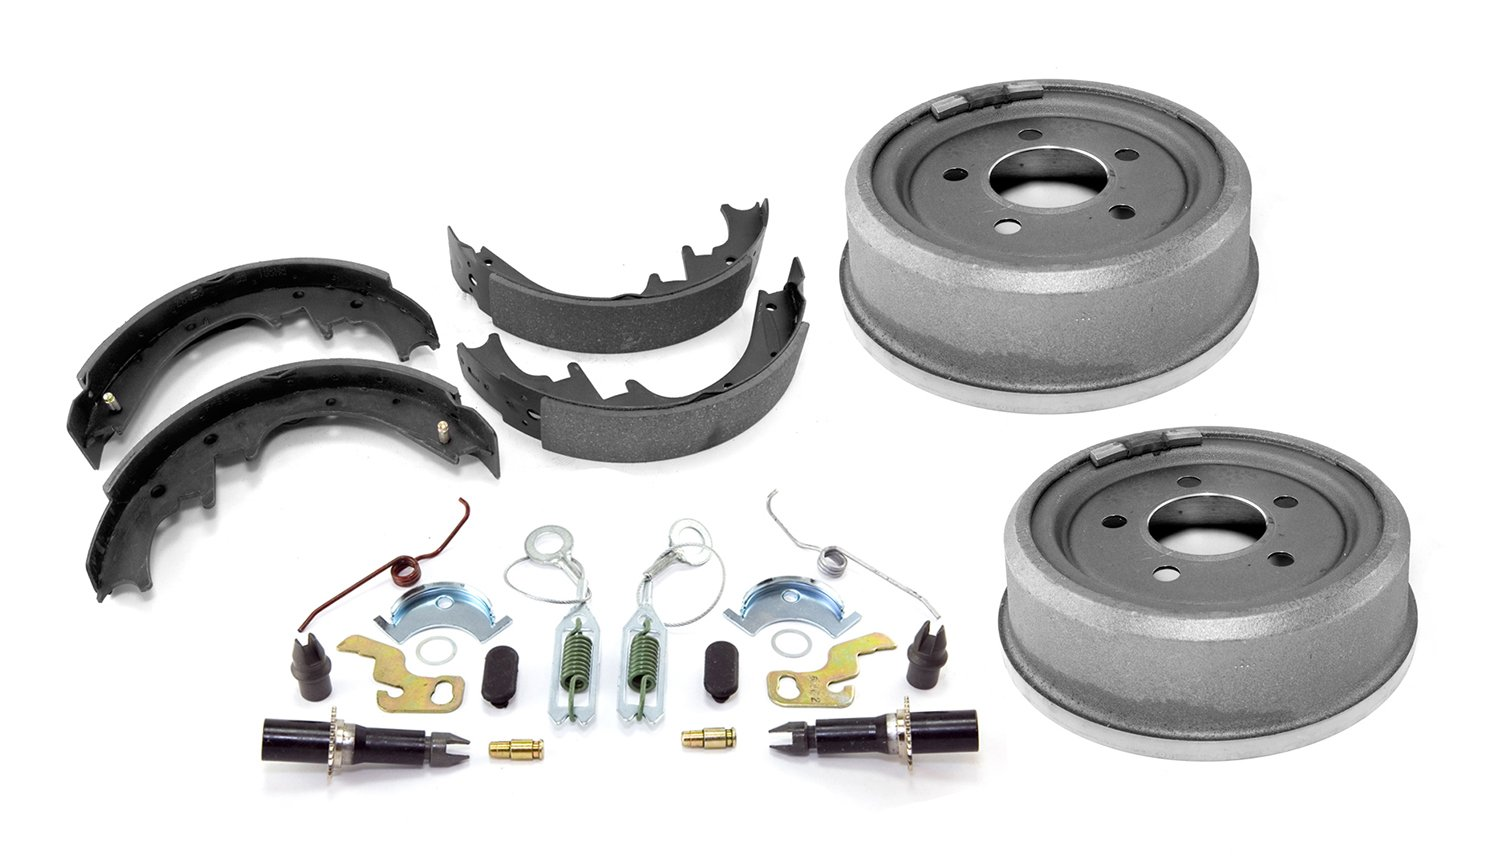 Omix-Ada 16766.01 Drum Brake Kit by Omix-Ada